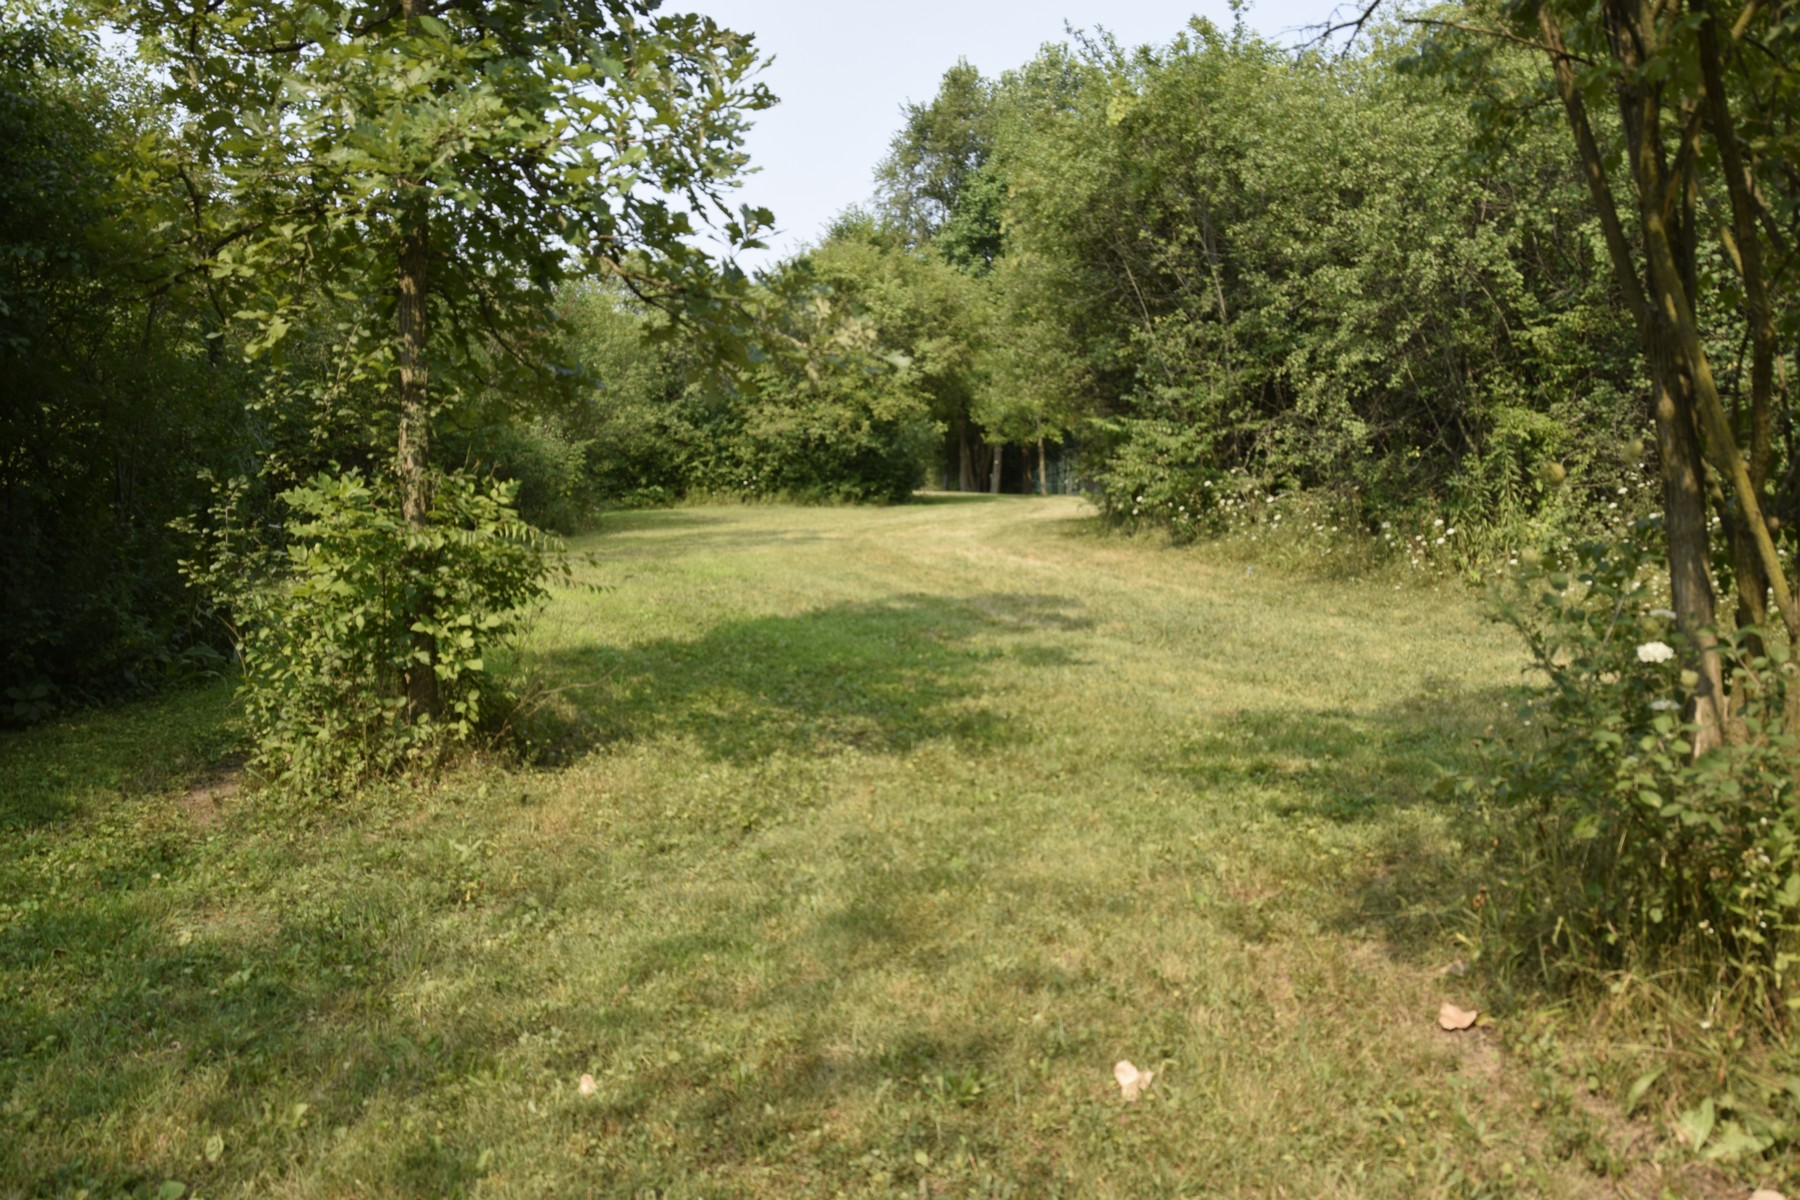 Земля для того Продажа на Private large vacant lot in Hinsdale 6636 Lee Court Burr Ridge, Иллинойс 60527 Соединенные Штаты